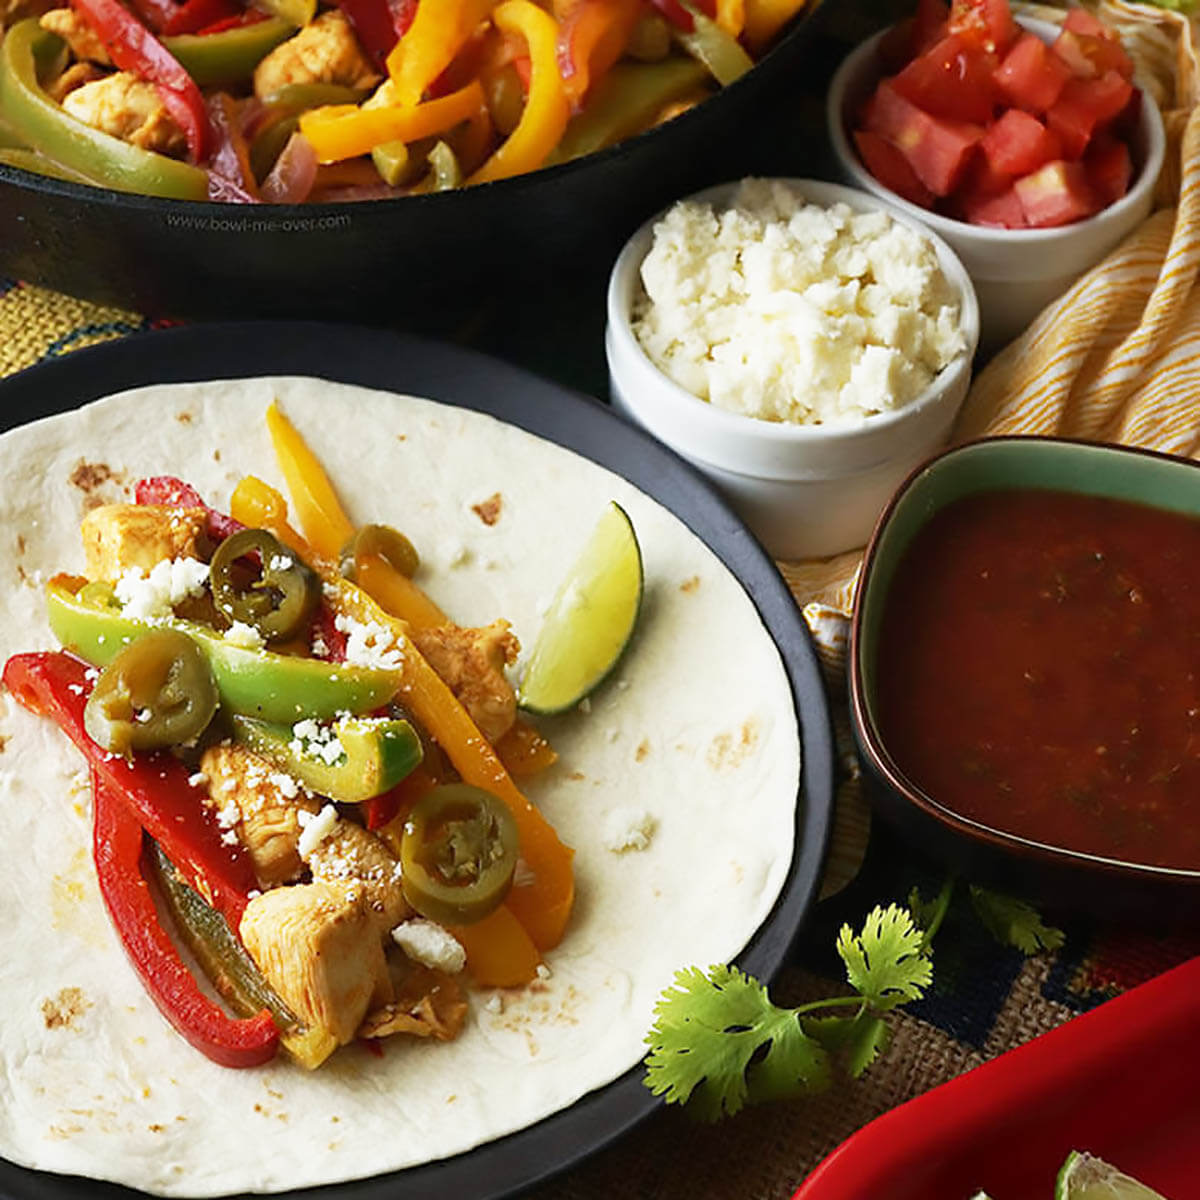 Fajitas on flour tortilla with cheese, tomatoes and sauce for seasoning.